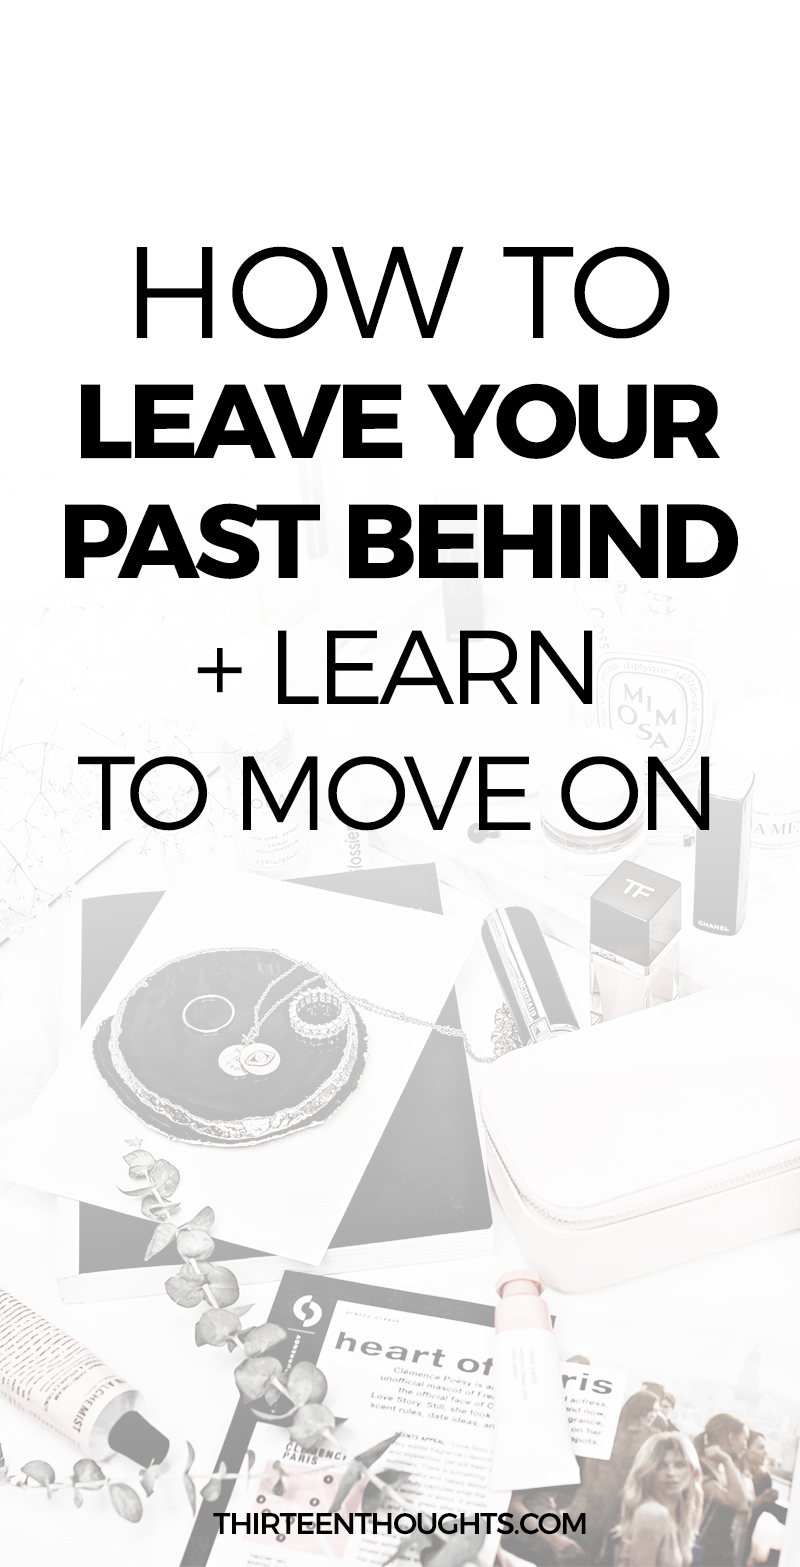 Leaving the past behind + learning to move on